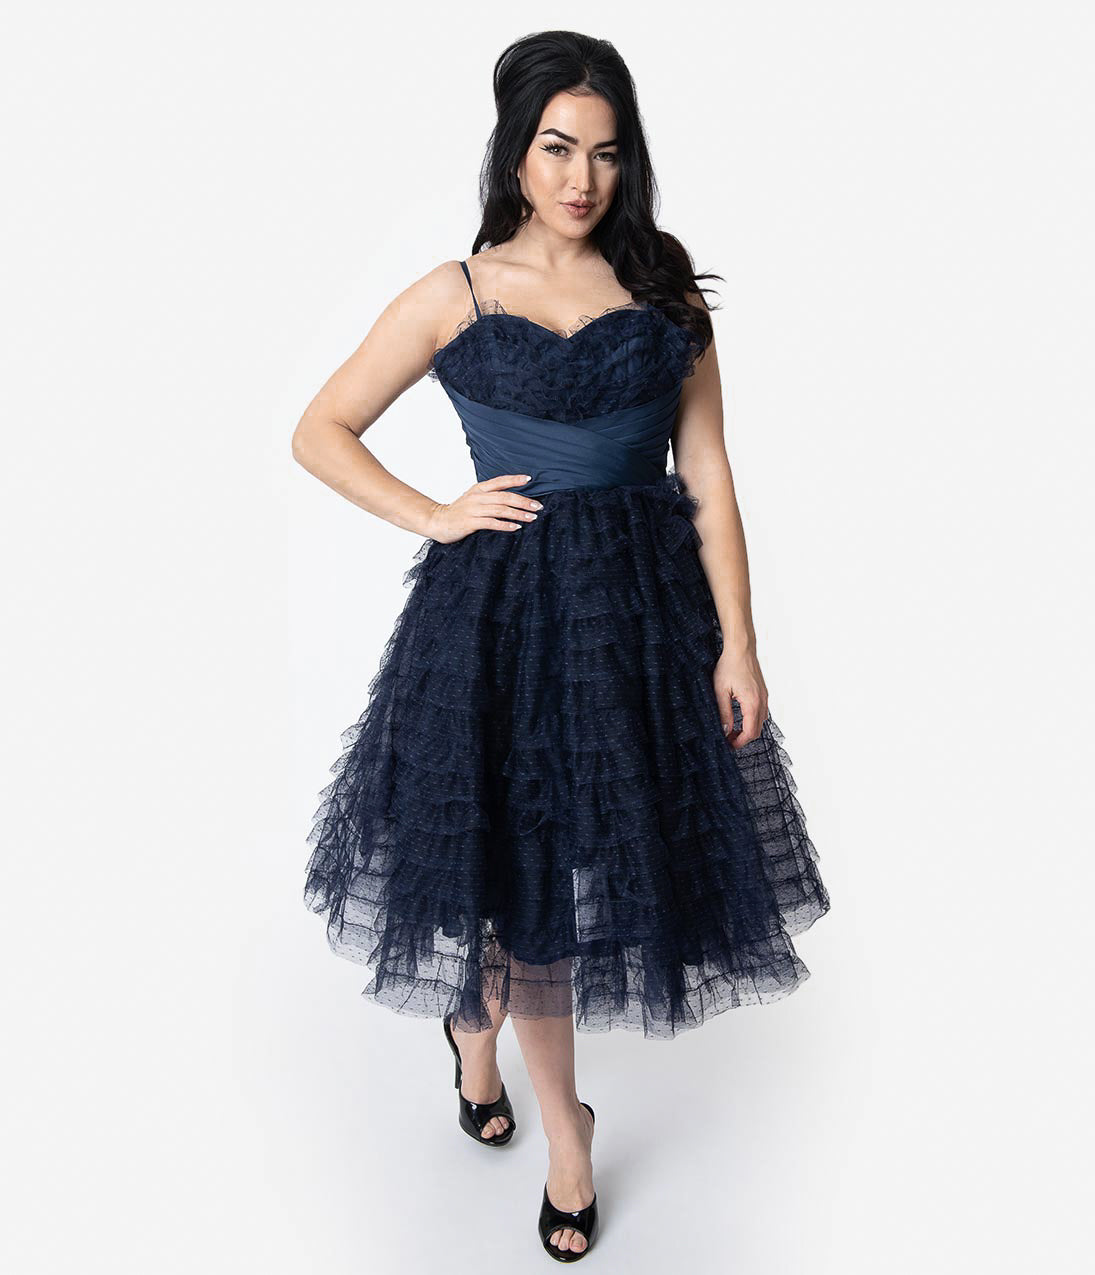 1950s Cocktail Dresses, Party Dresses Unique Vintage 1950S Navy Ruffled Tulle Sweetheart Cupcake Swing Dress $128.00 AT vintagedancer.com